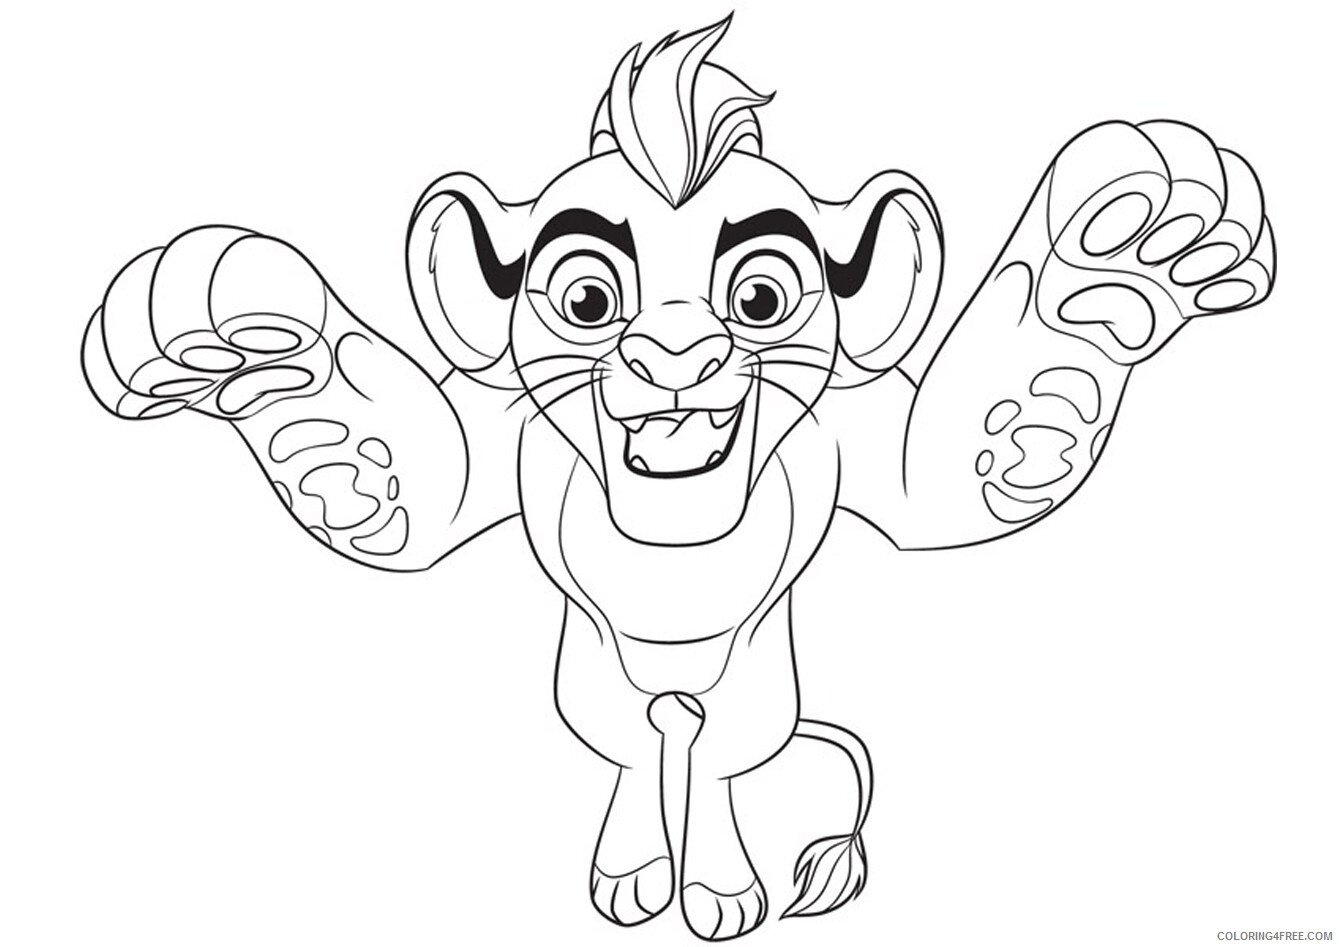 The Lion Guard Coloring Pages TV Film Kion Lion Guard Printable 2020 09097 Coloring4free